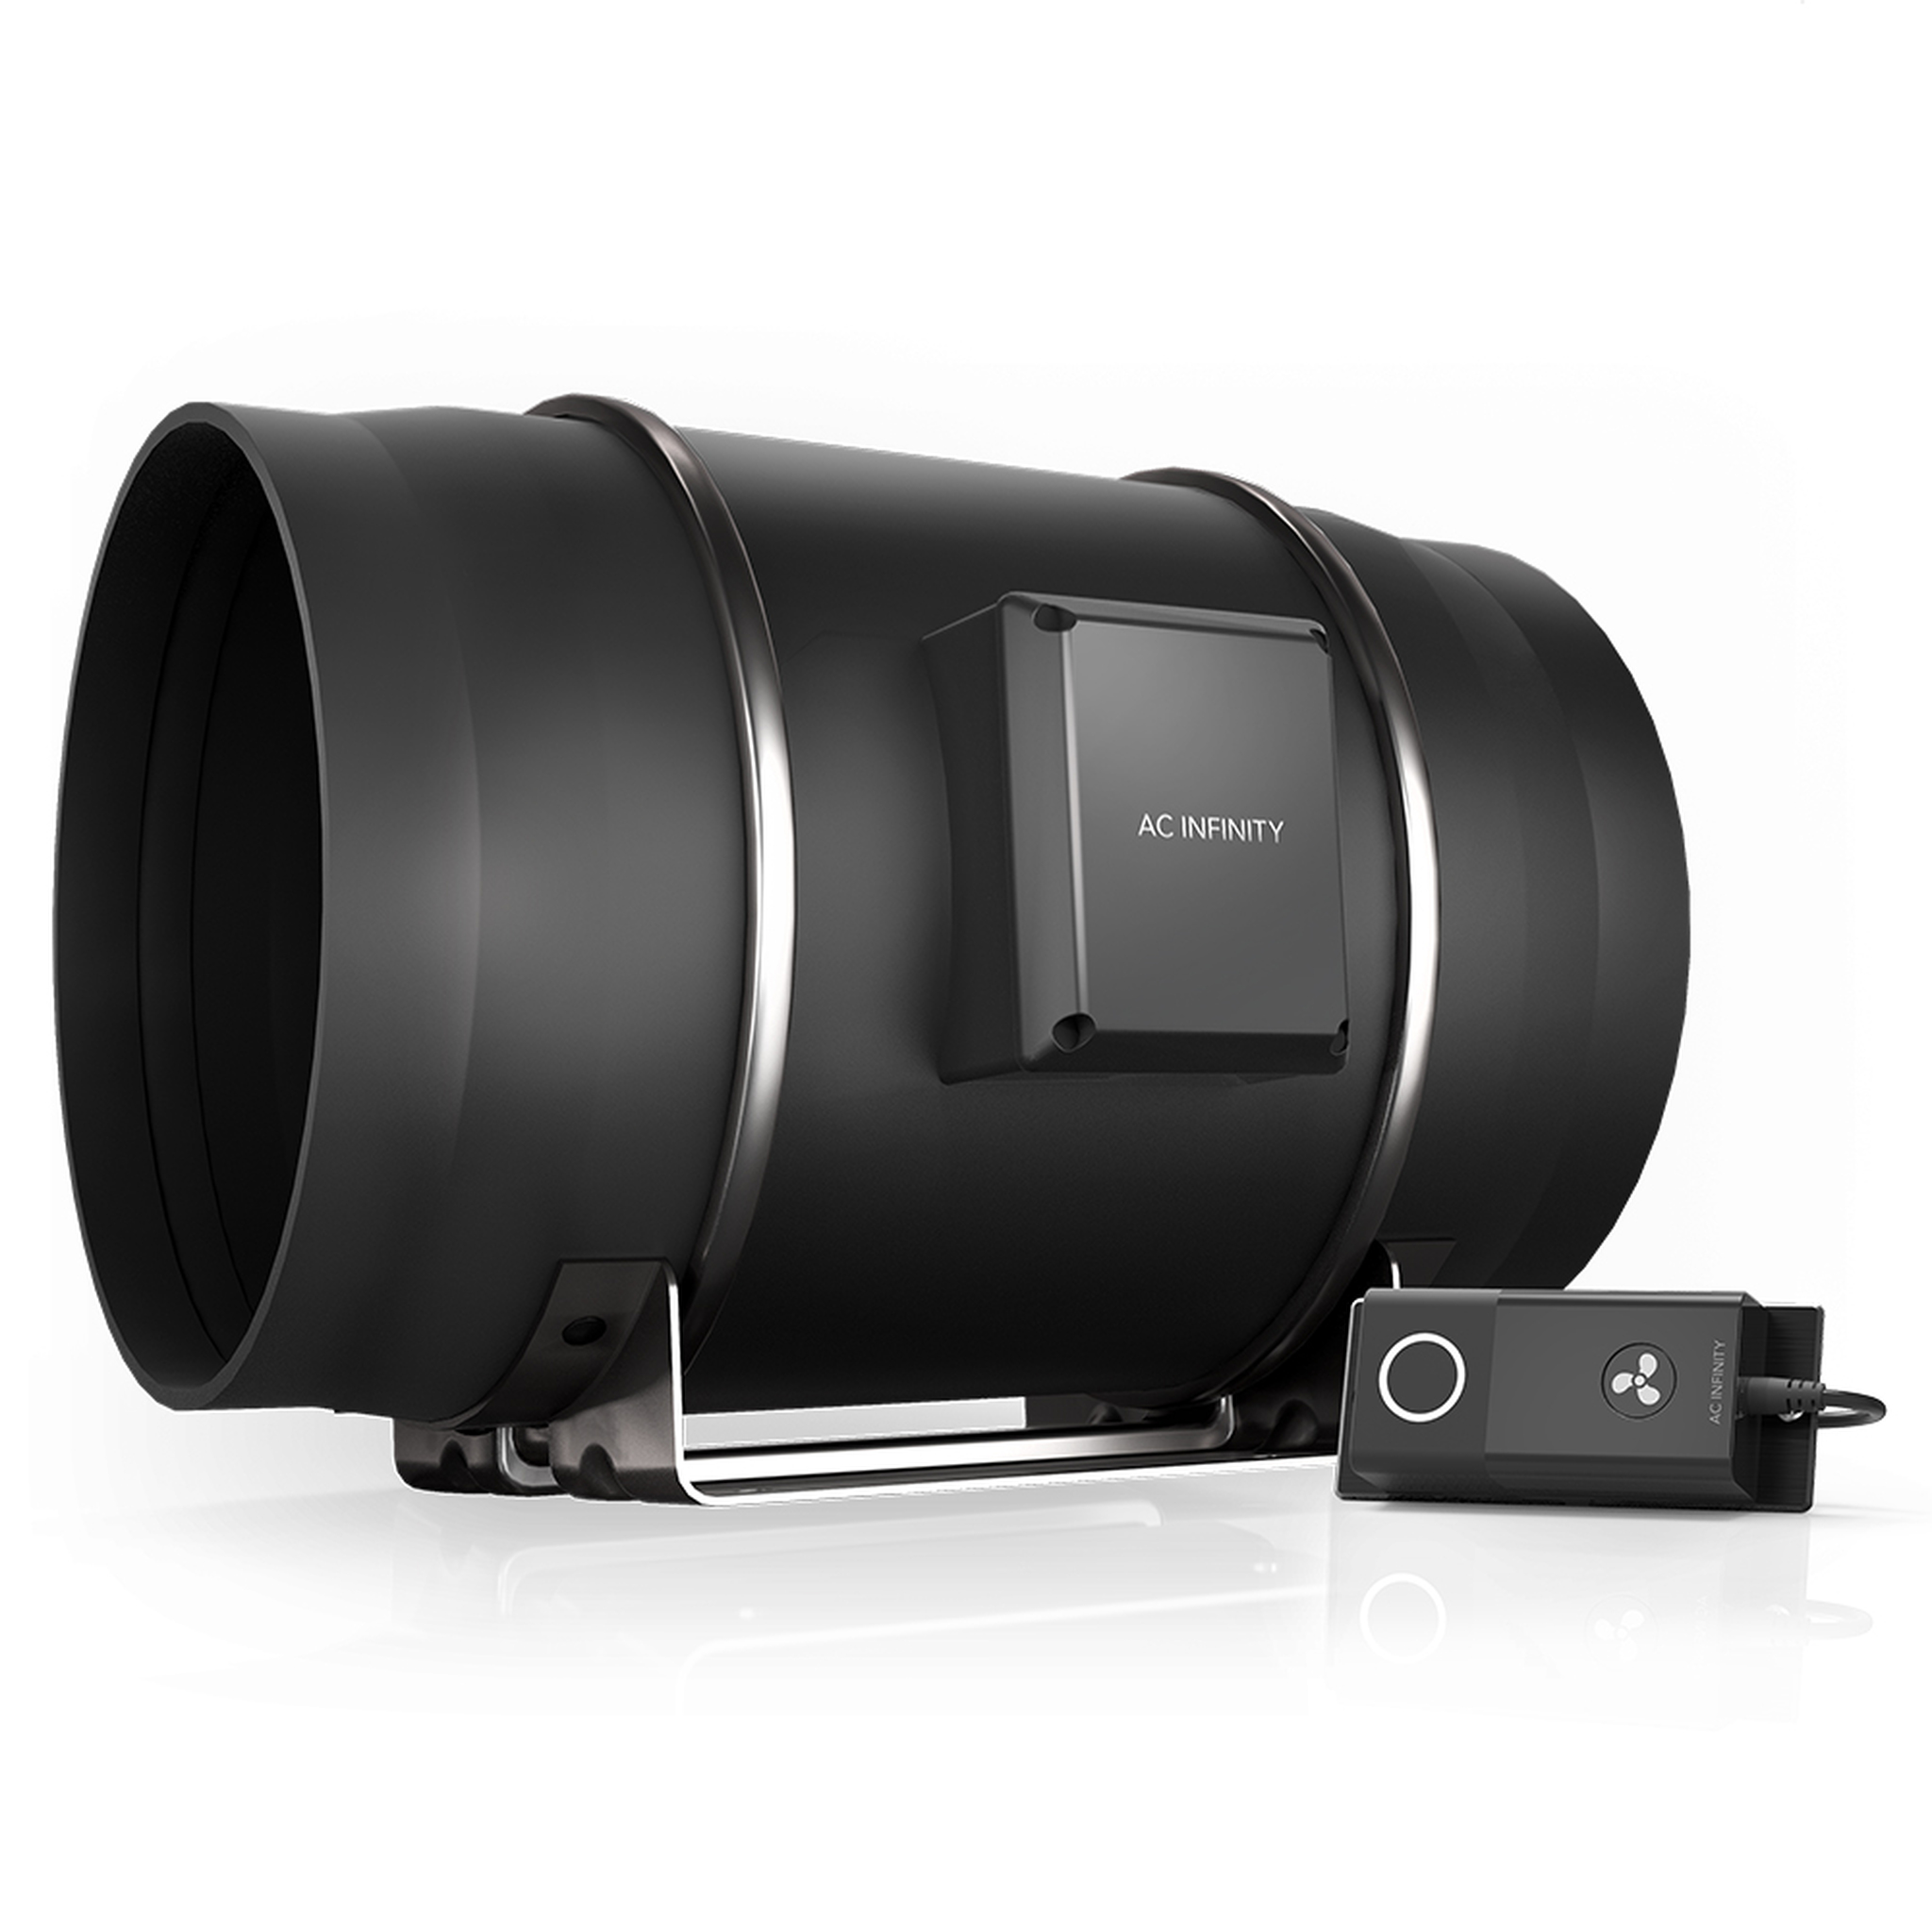 Cloudline S10 with inline control product image